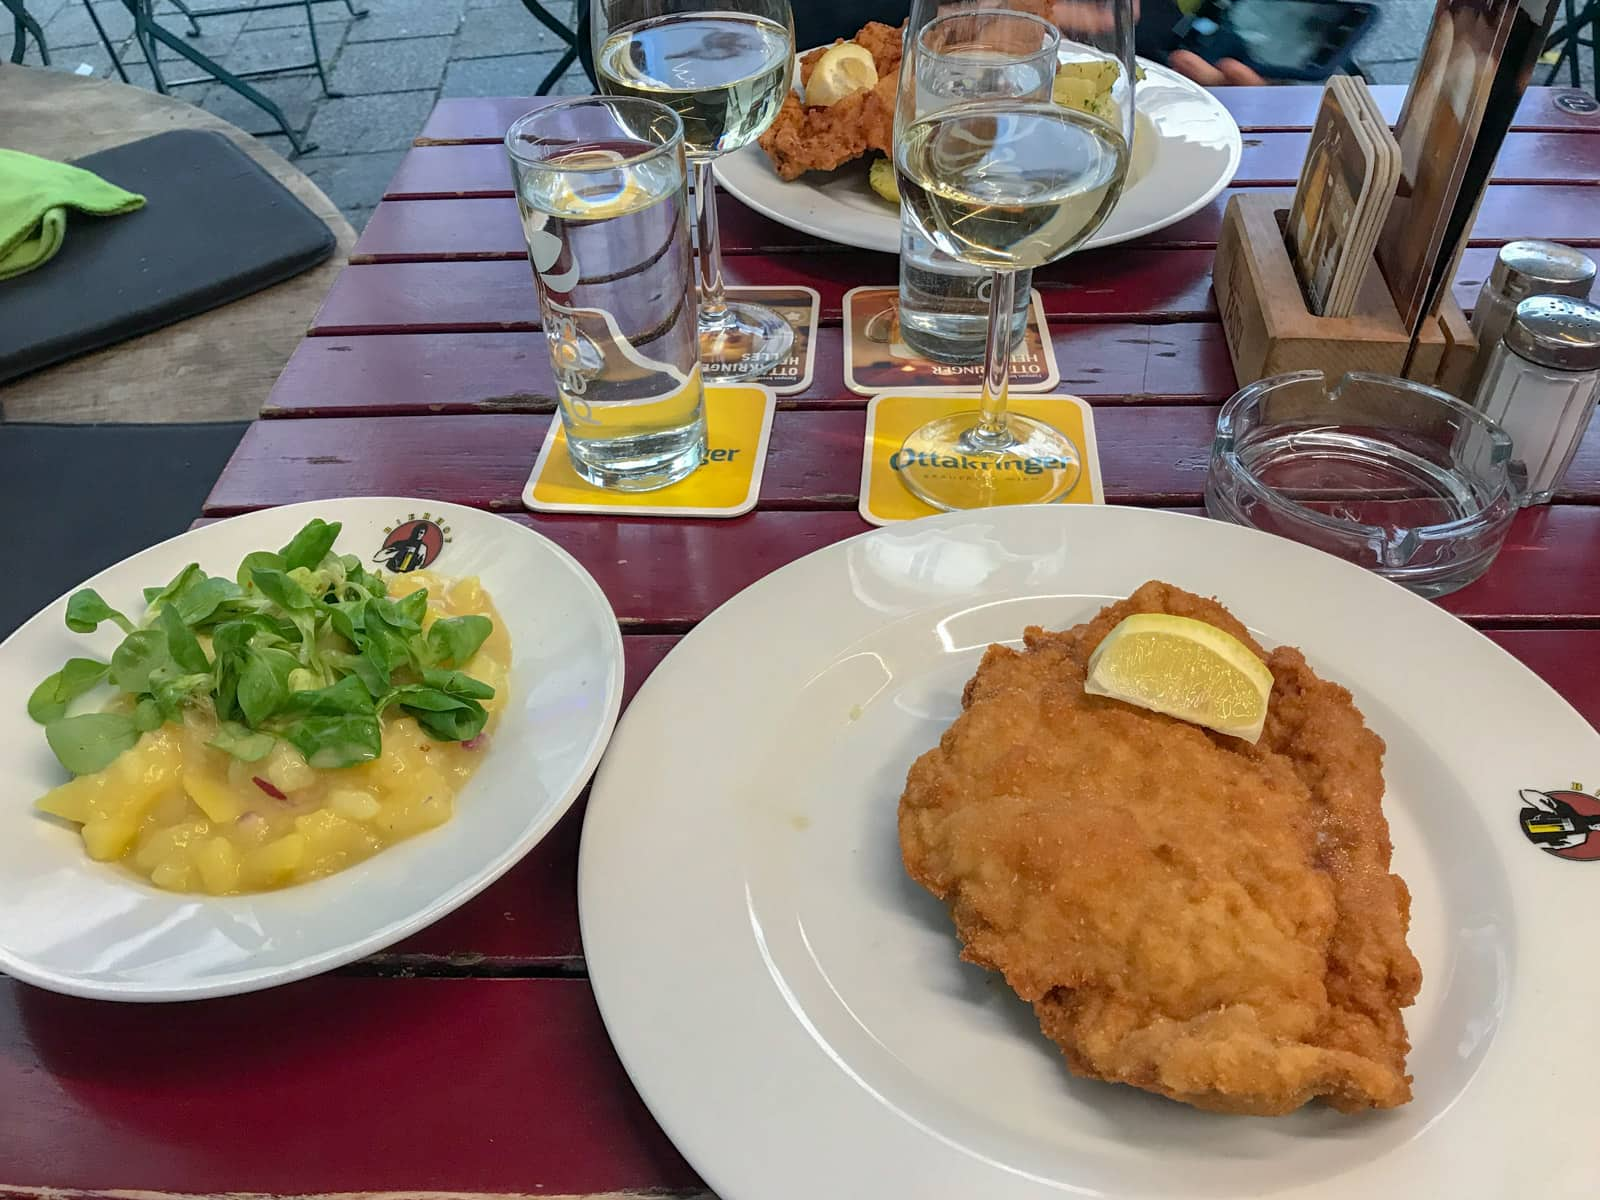 Two plates on a table, one with potato salad and the other with schnitzel and a lemon on top